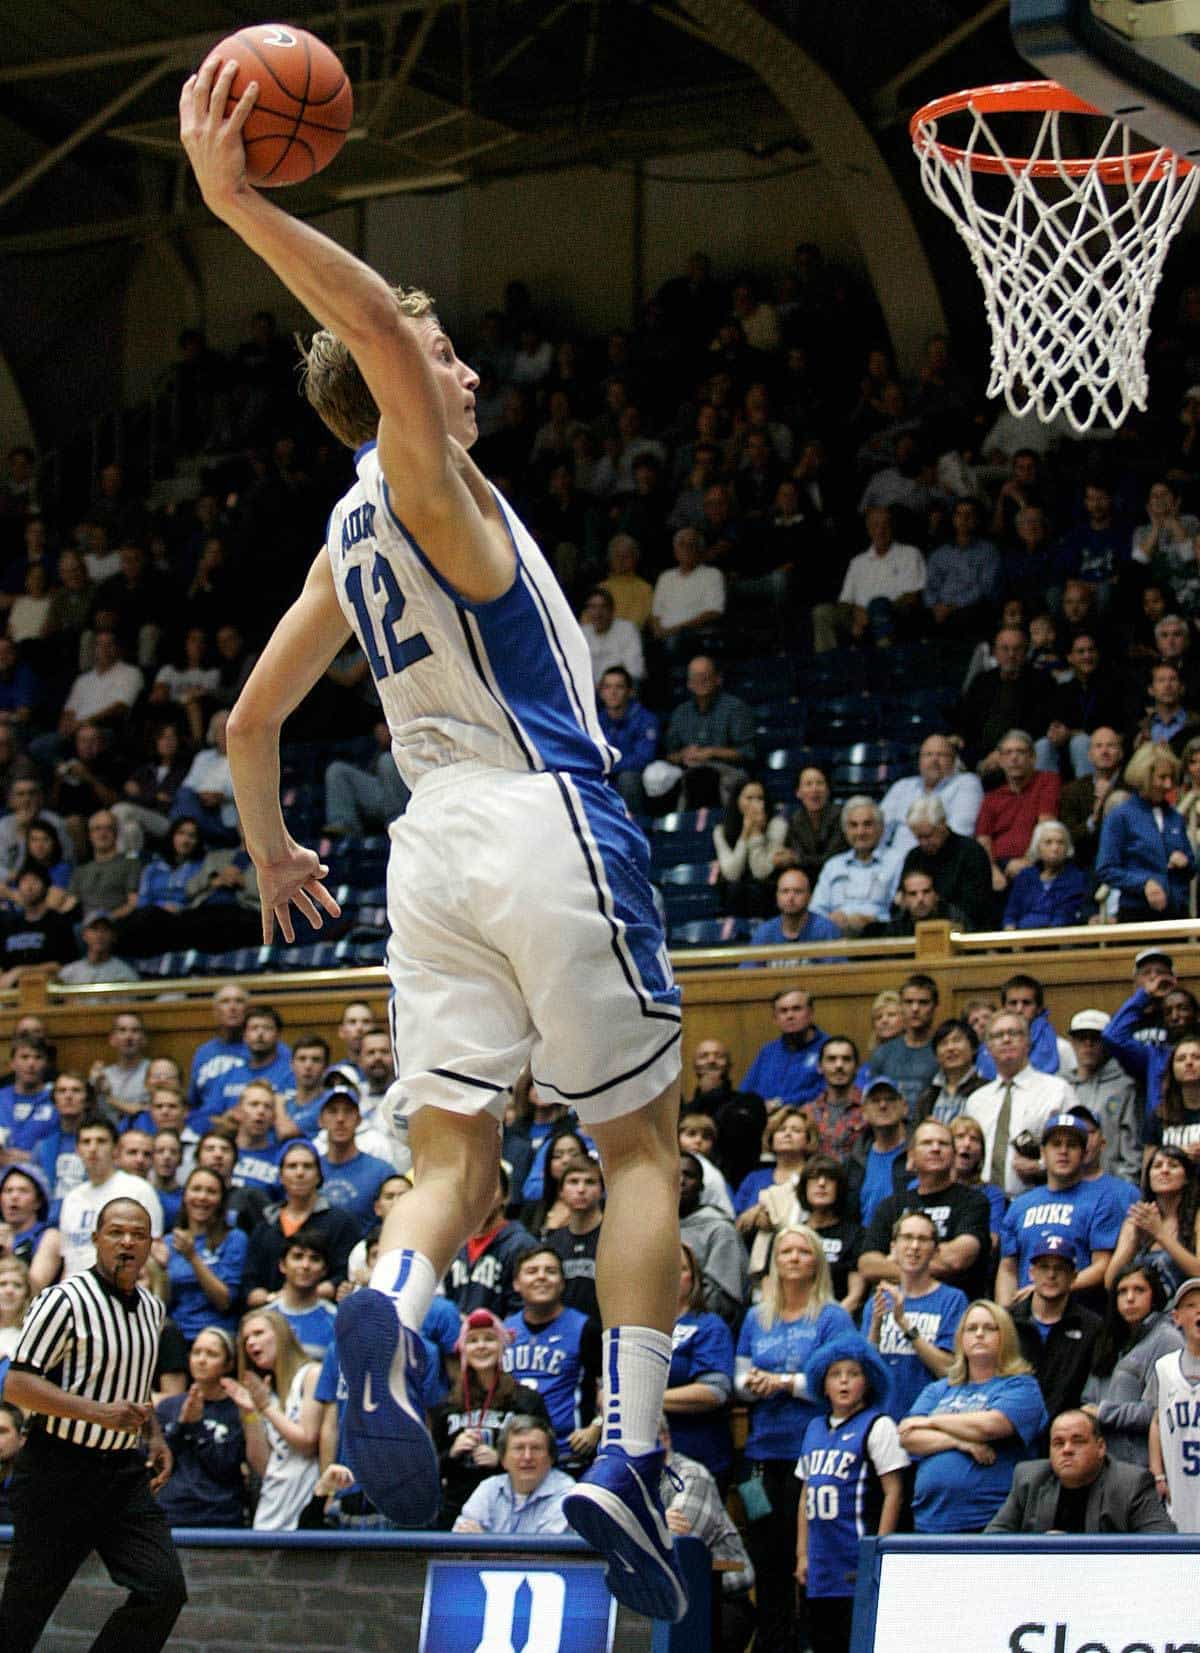 Alex Murphy is transferring from Duke to the University of Florida / Photo: Mark Dolejs-USA TODAY Sports